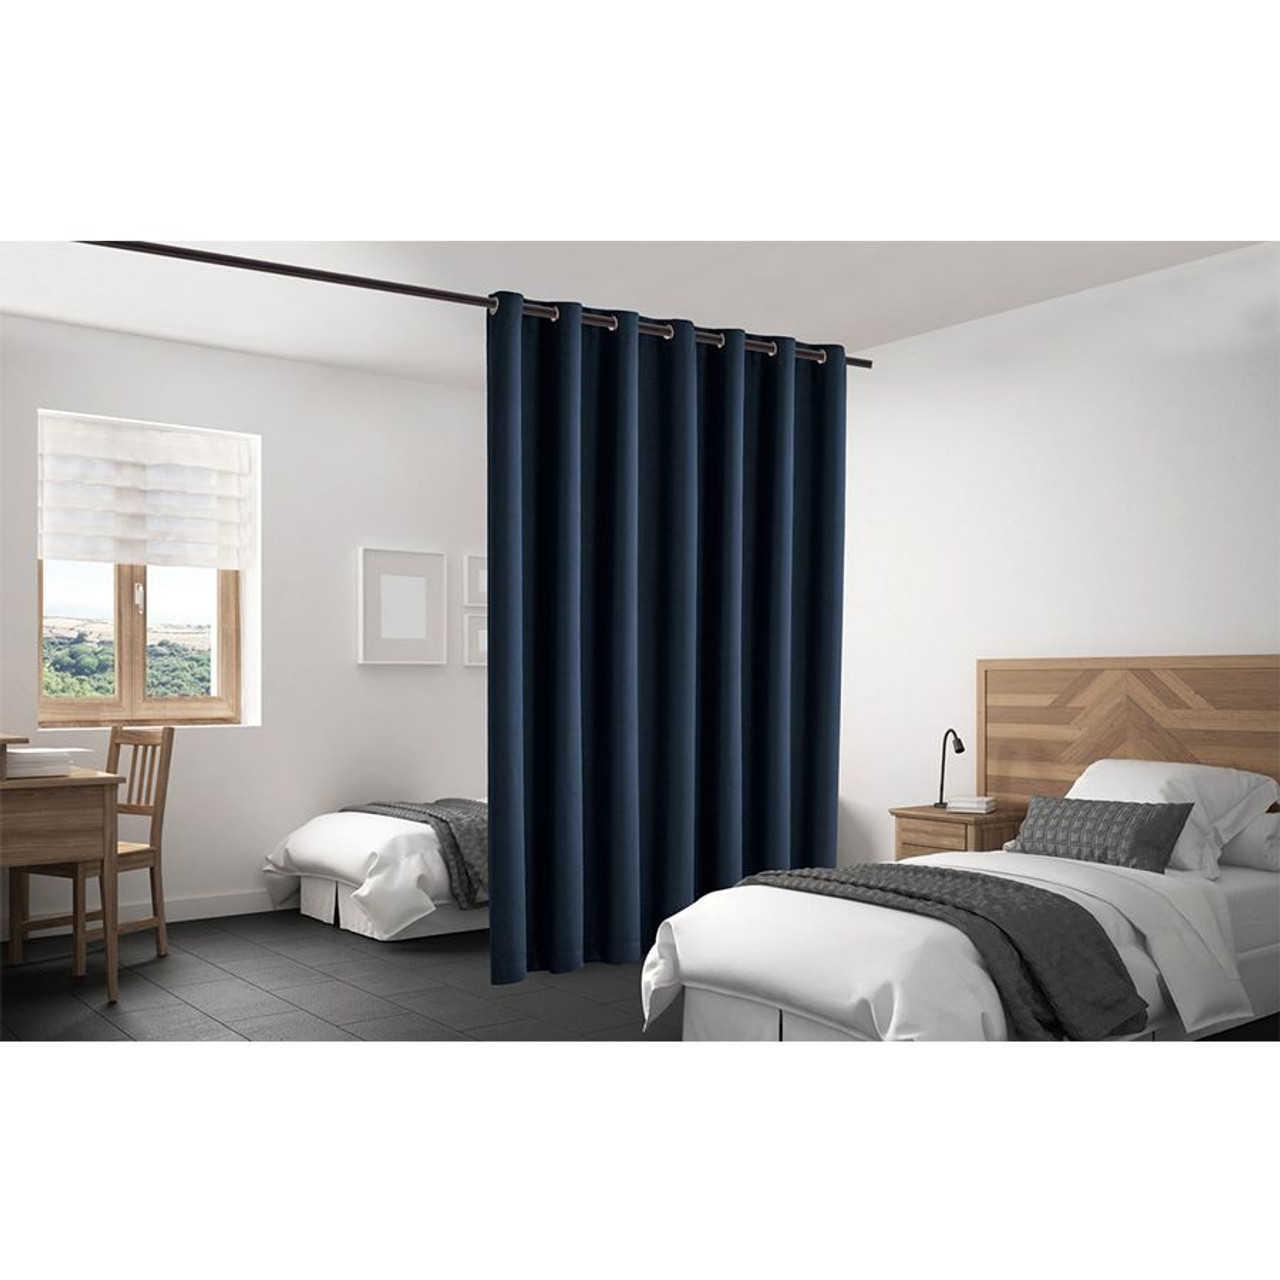 Blackout Room Divider Curtain Panel Thermal Insulated Navy Blue Color